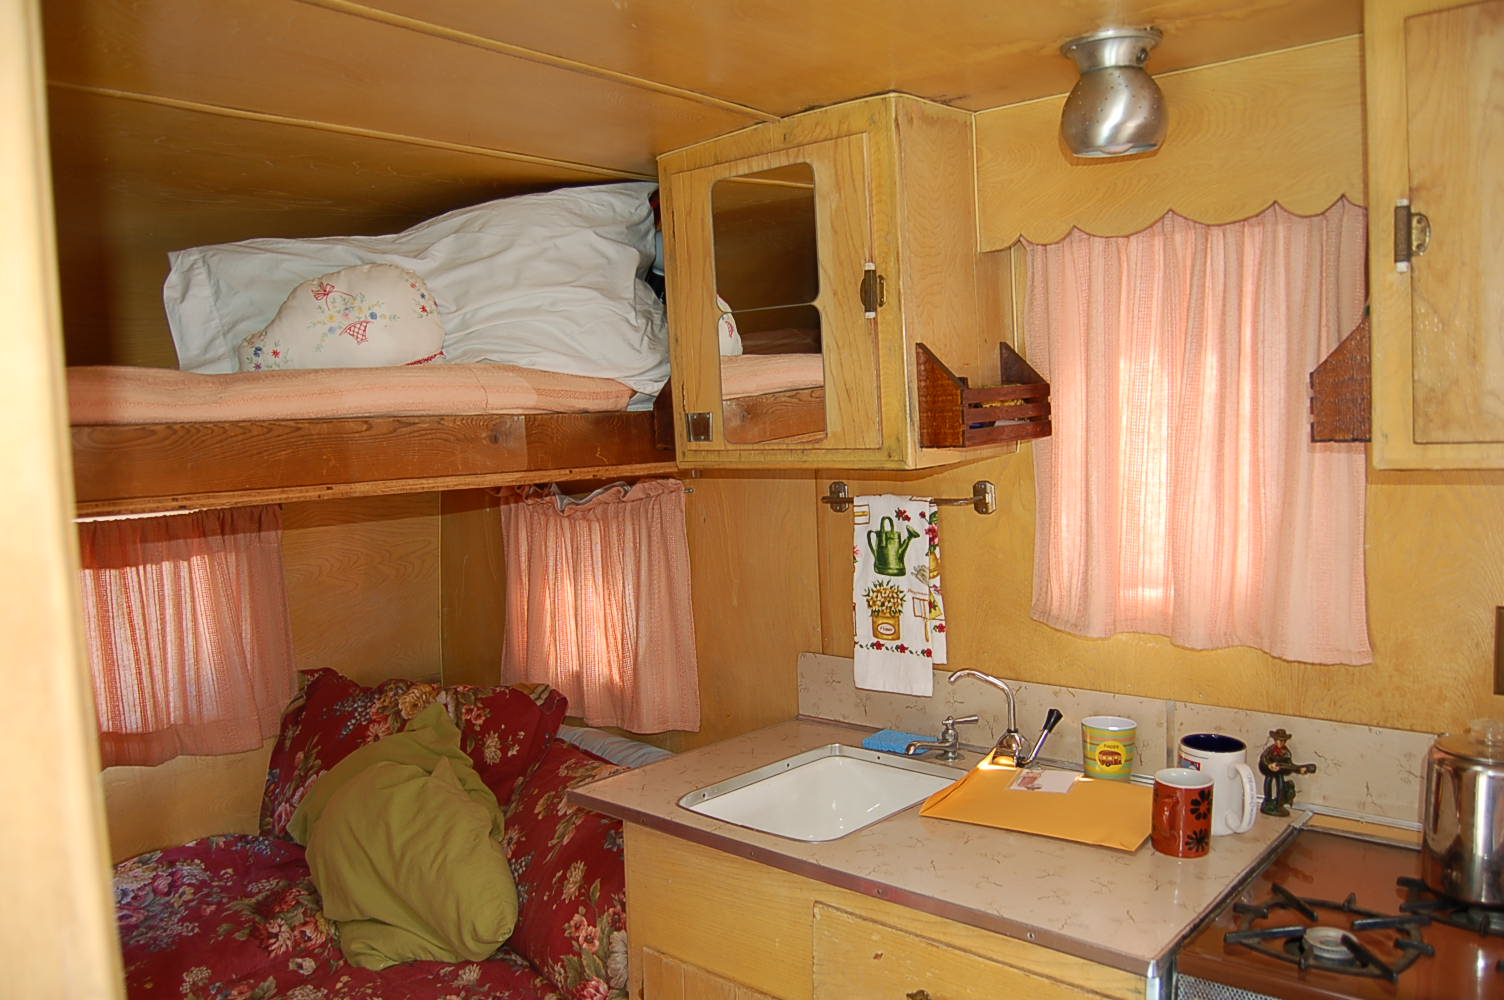 Photo Of Warm And Cozy Kitchen And Sleeping Area In A Vintage Aloha Travel  Trailer